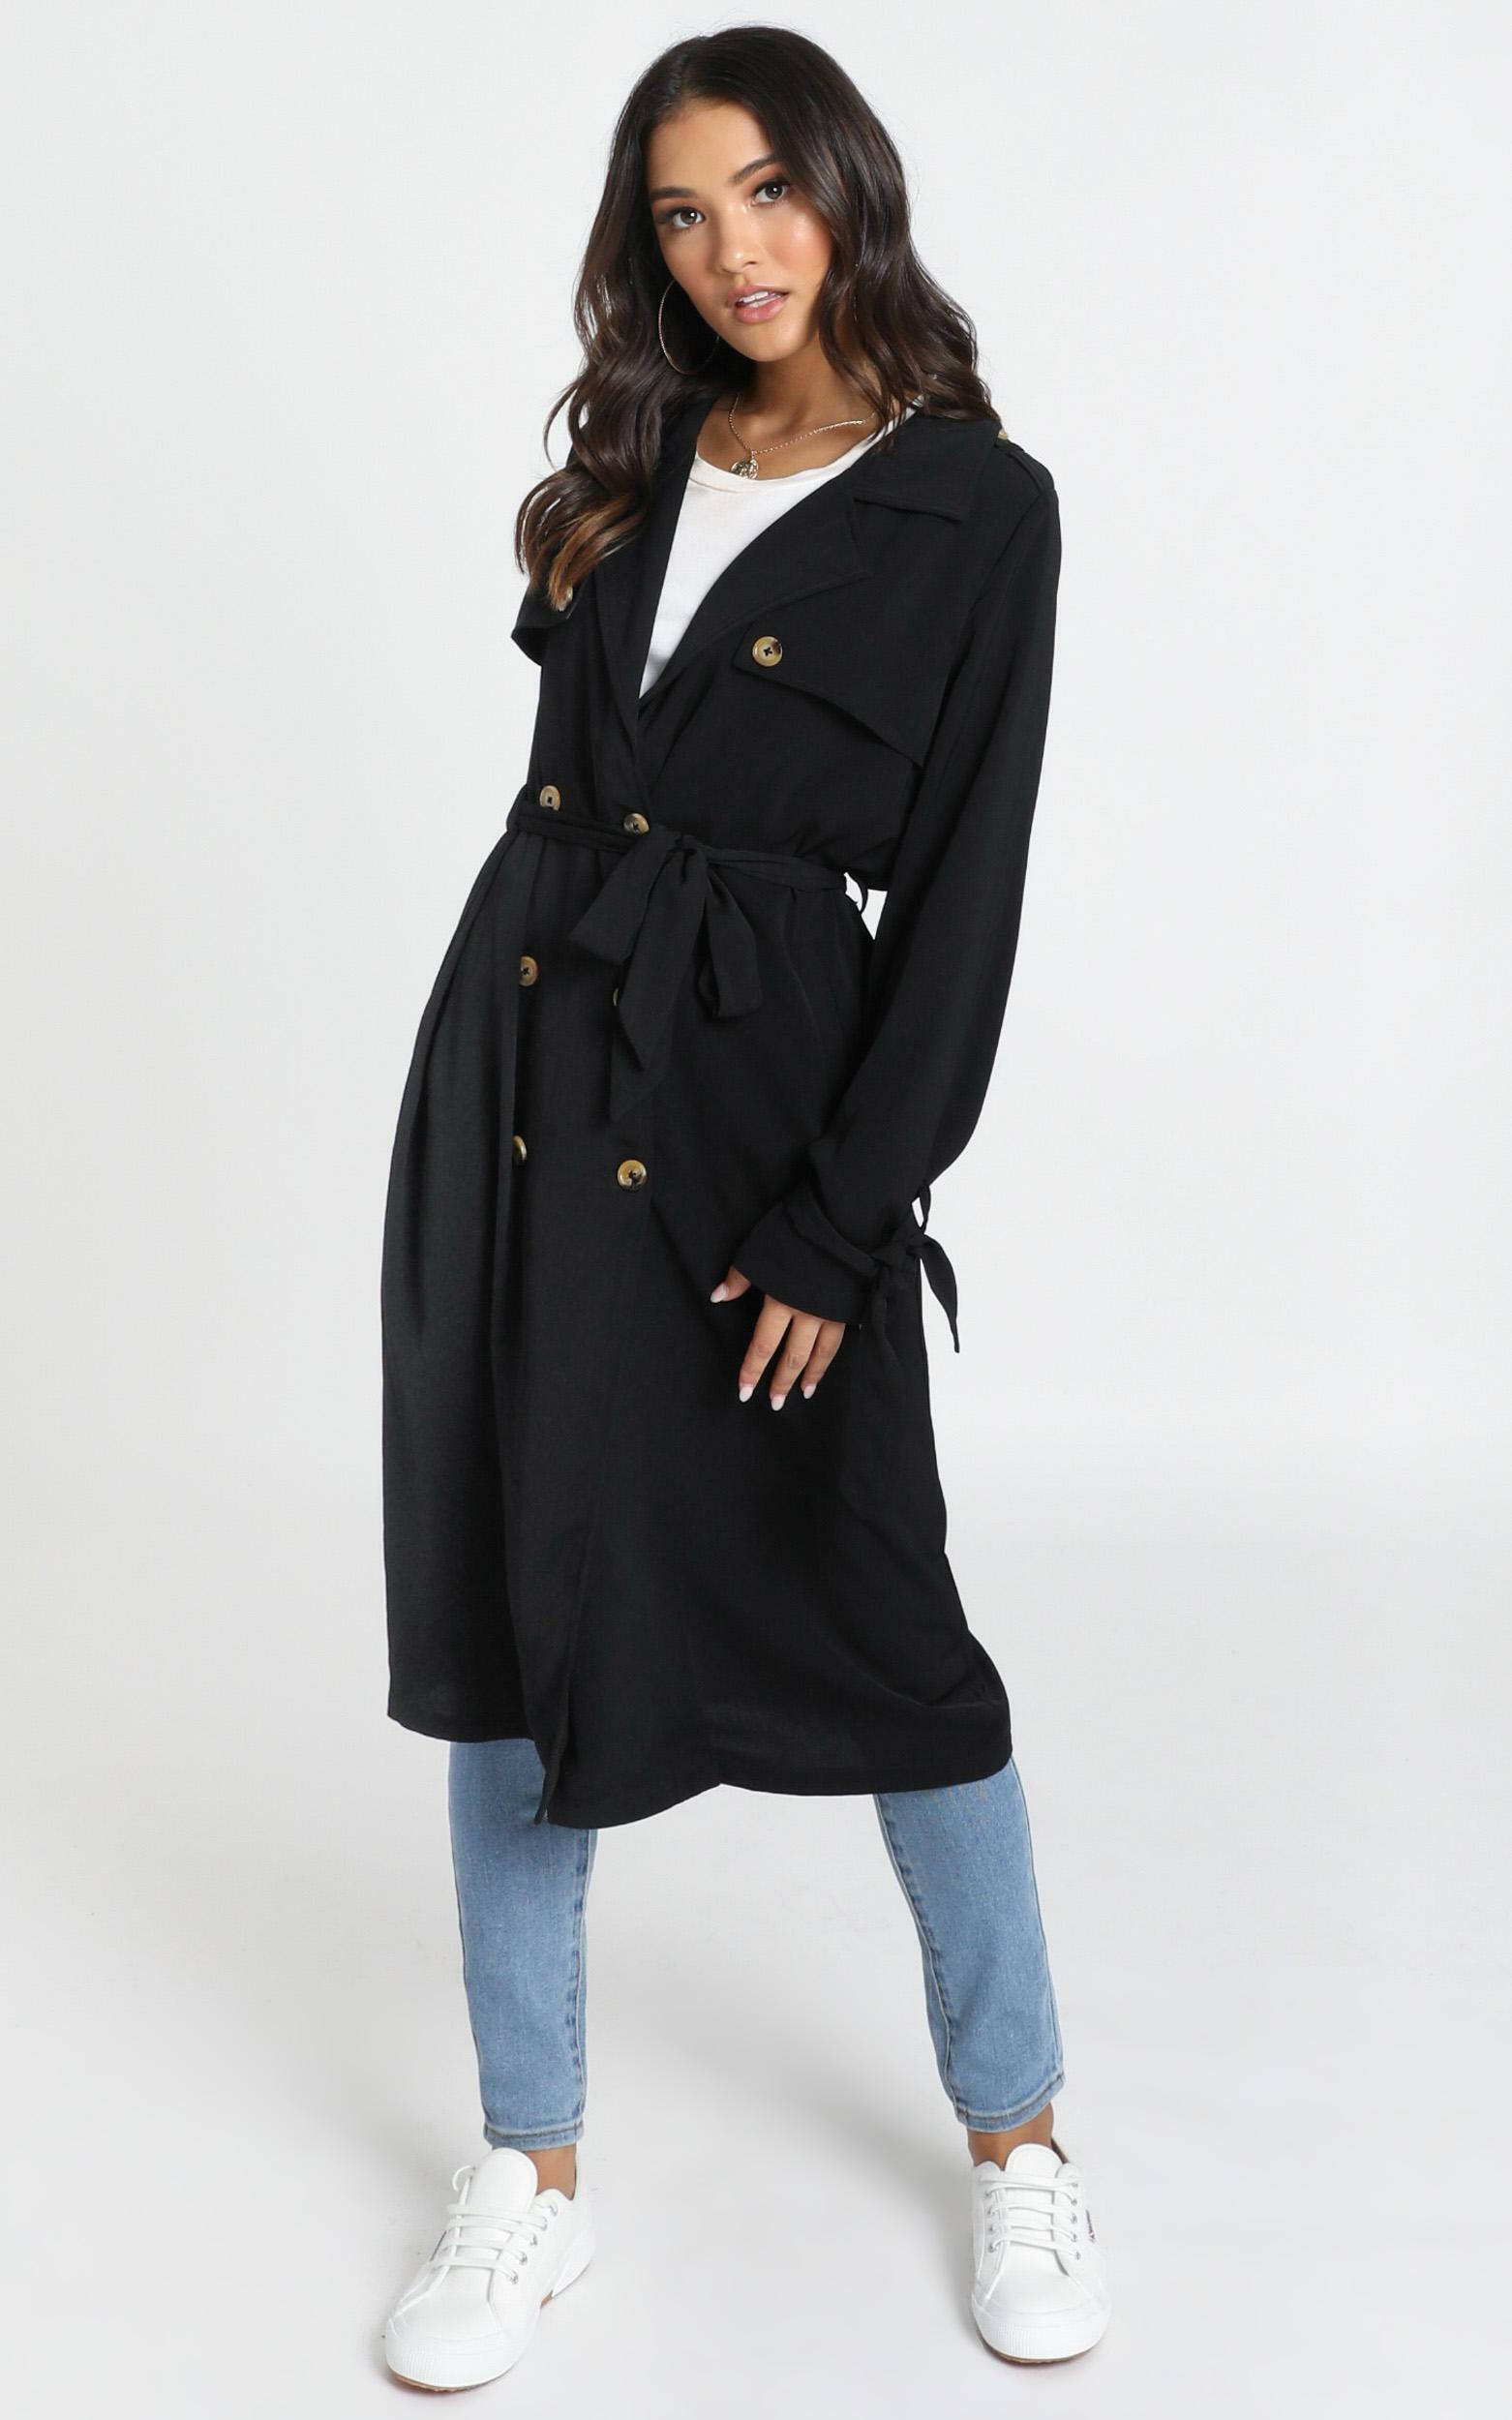 Stepping It Up Trench Coat In Black - 14 (XL), Black, hi-res image number null